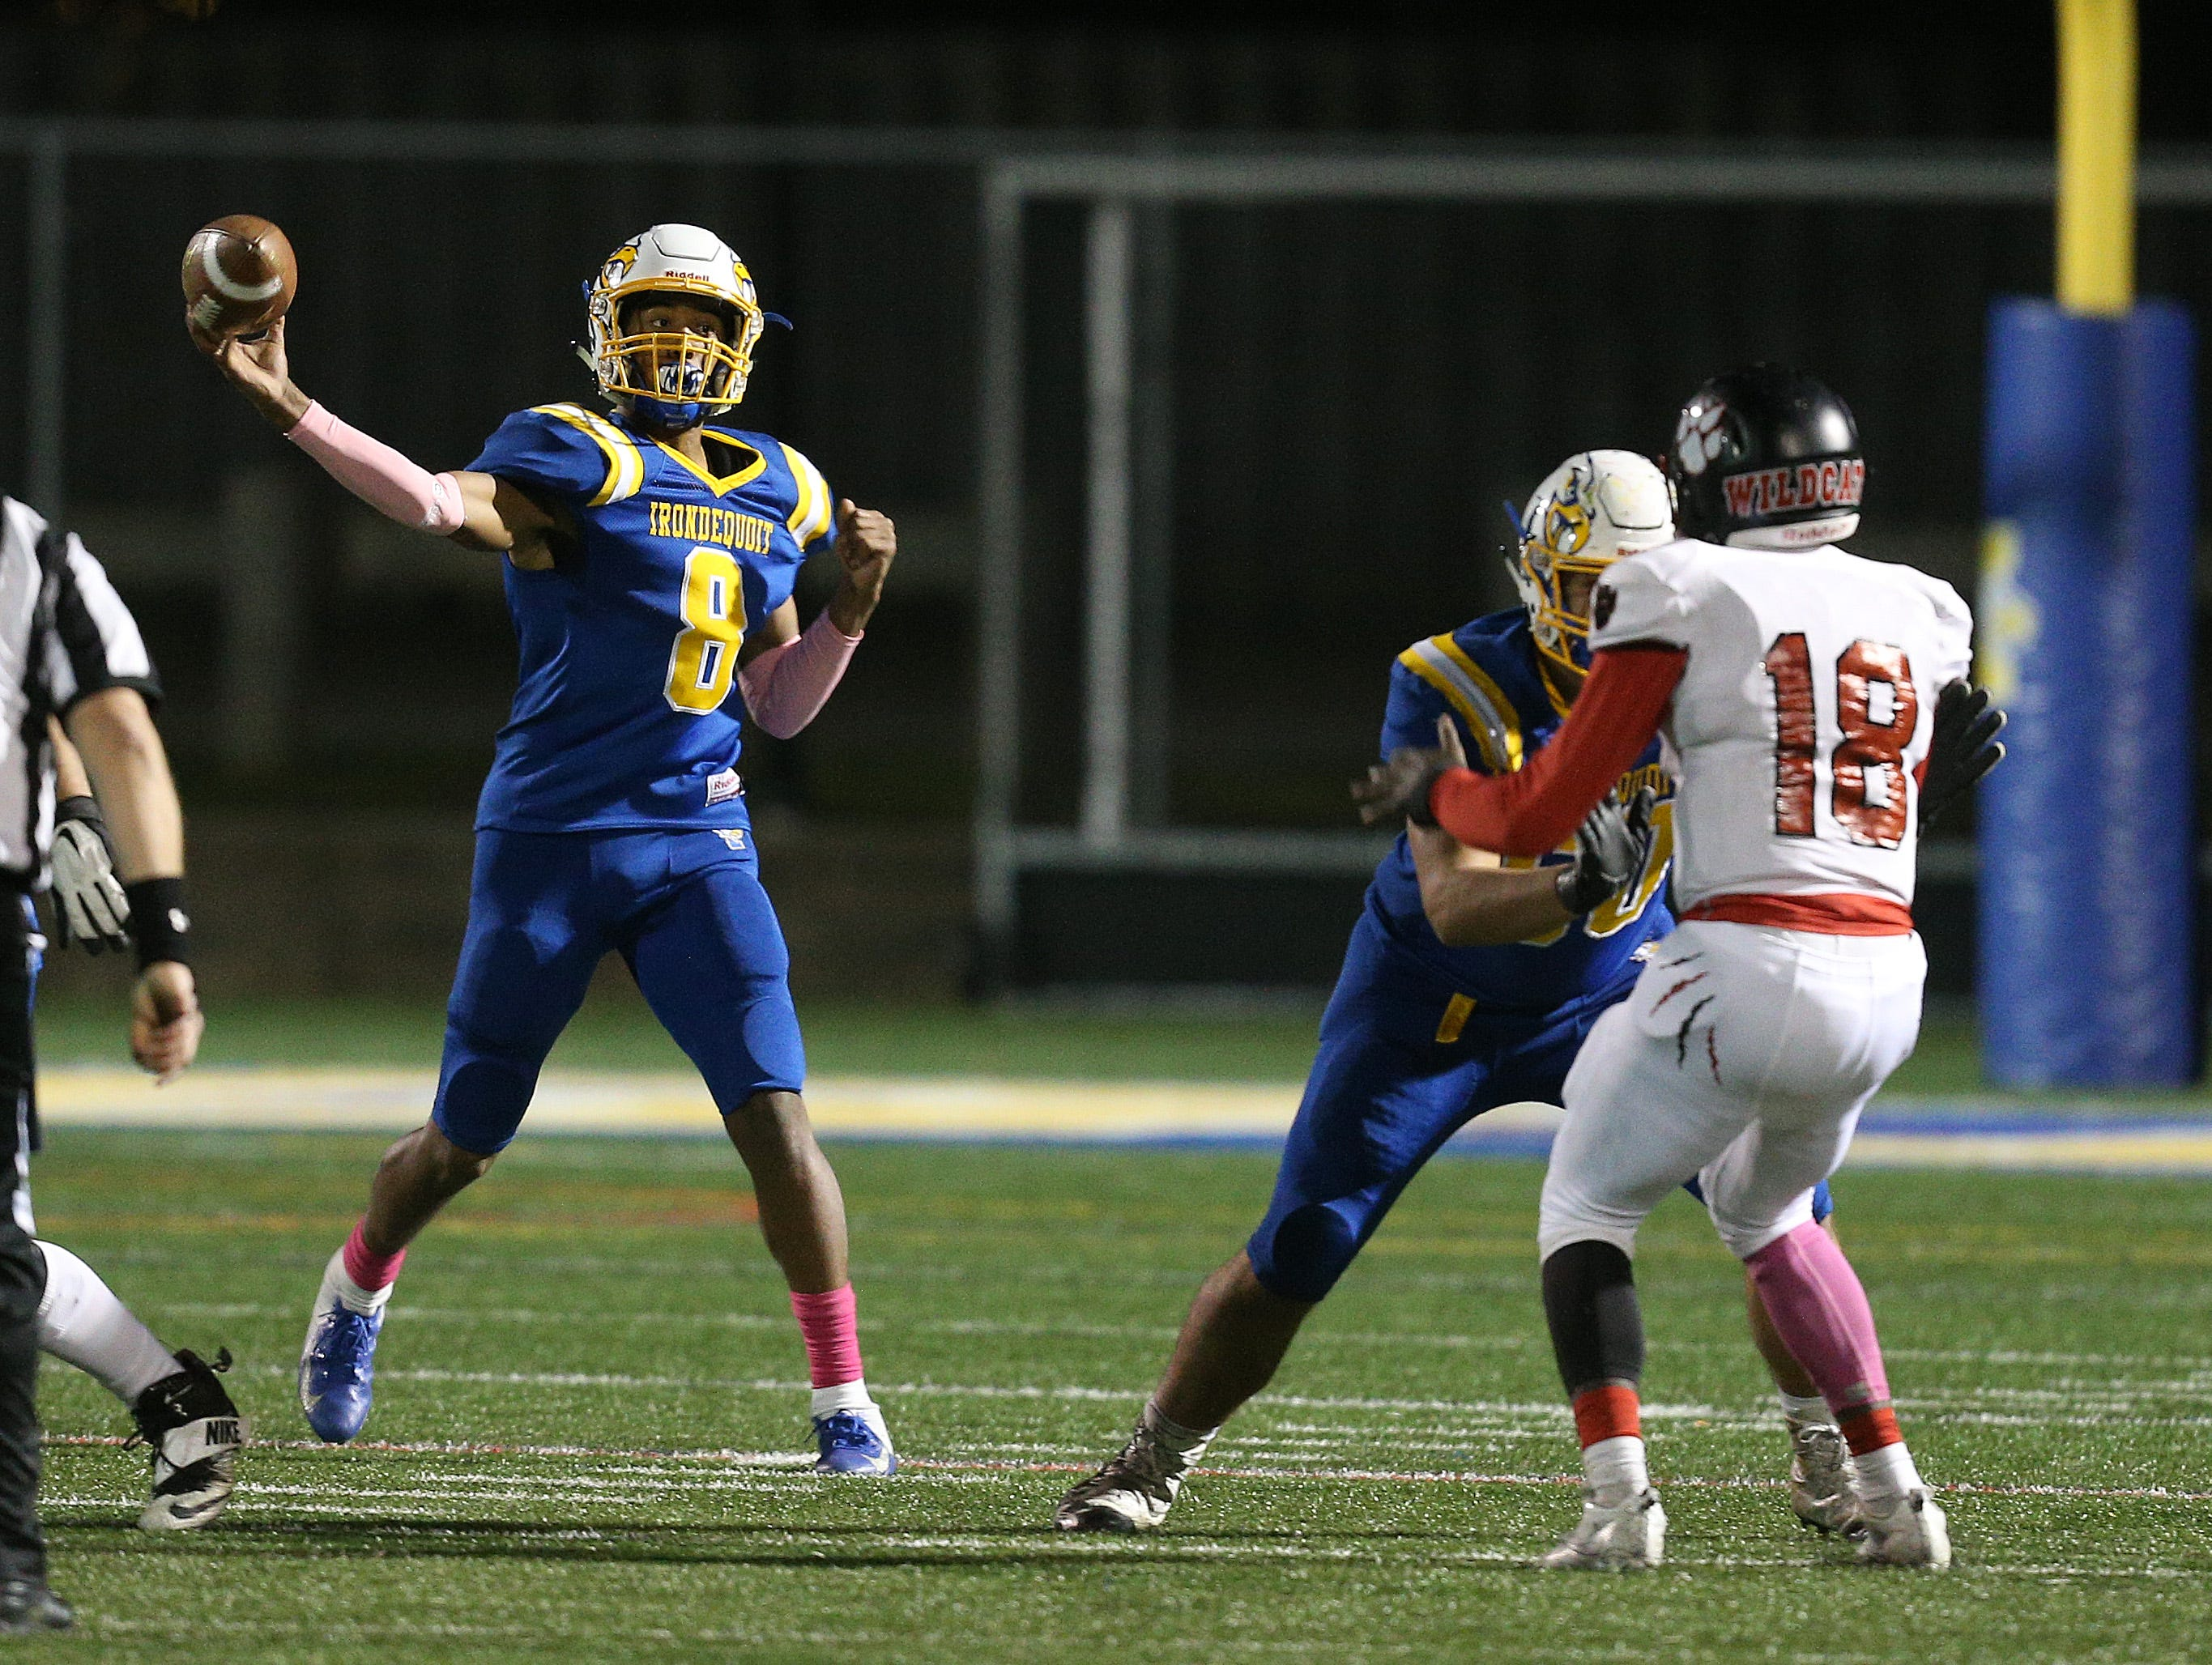 Irondequoit quarterback Freddy June Jr. stands in the pocket and delivers a pass over the middle.